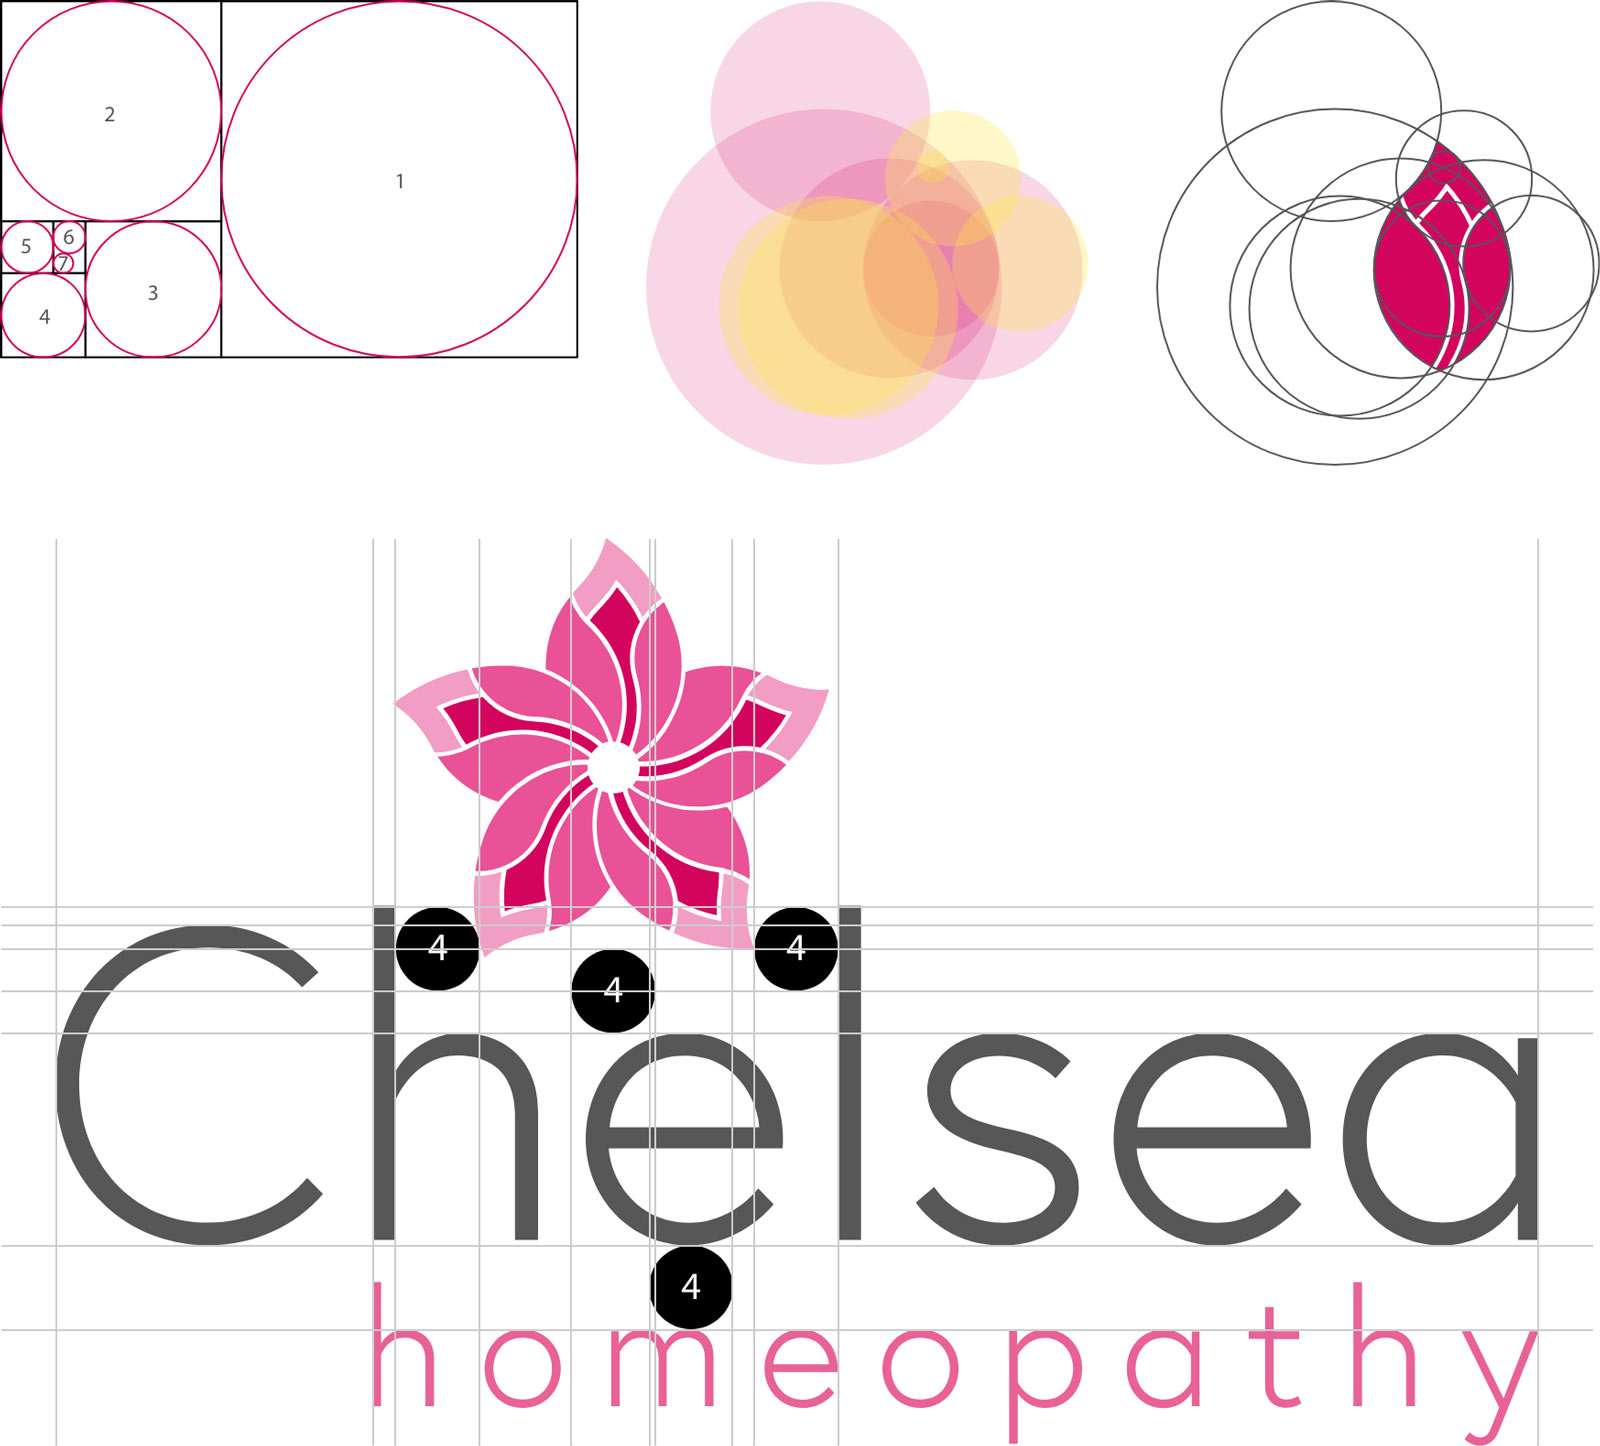 Chelsea Homeopathy Symbol Creation Using Golden Ratio